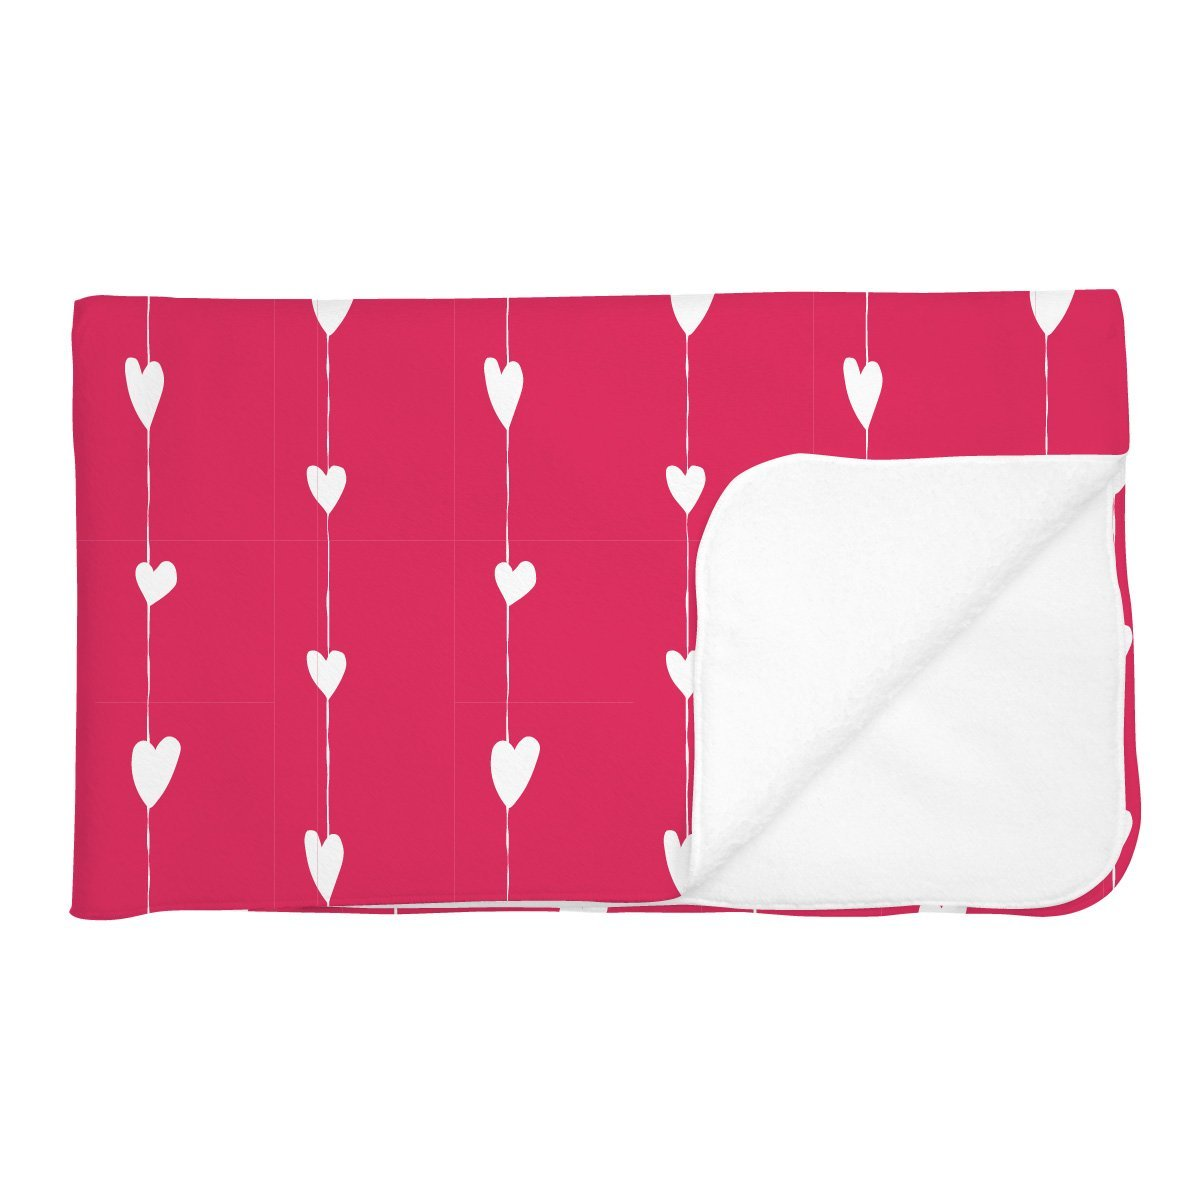 Adalee's Valentine Hearts | Adult Size Blanket